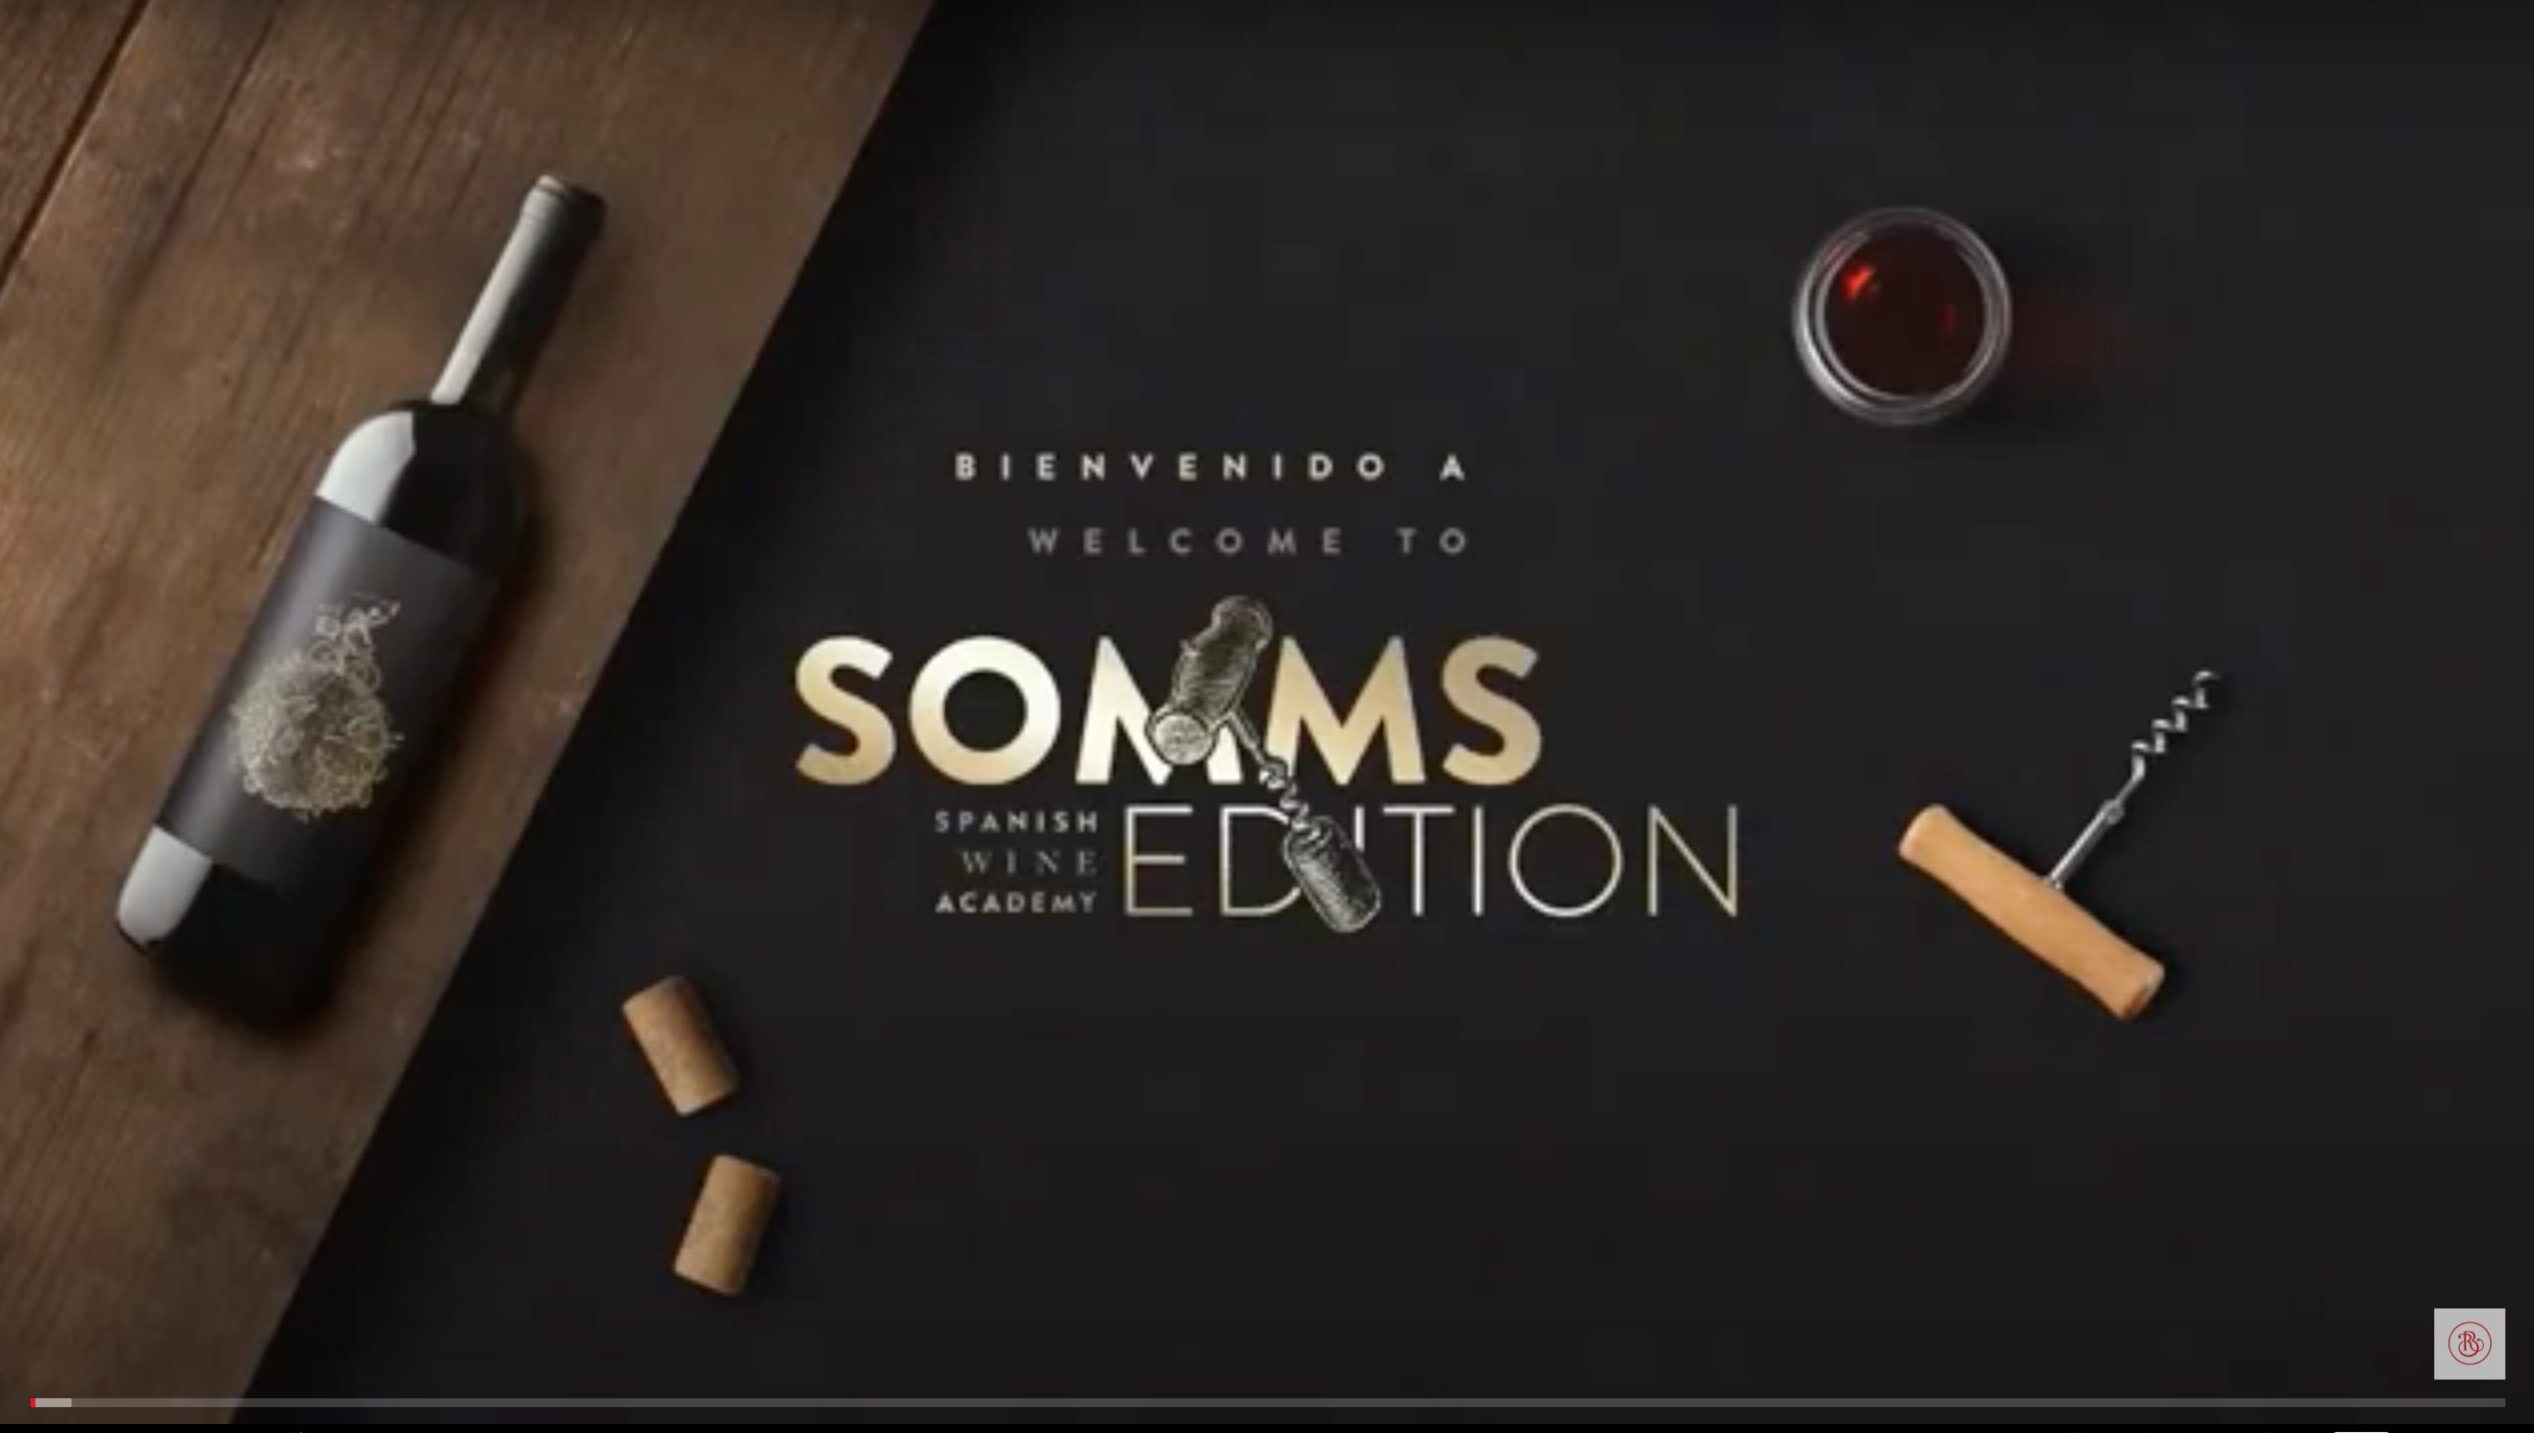 Somms Edition